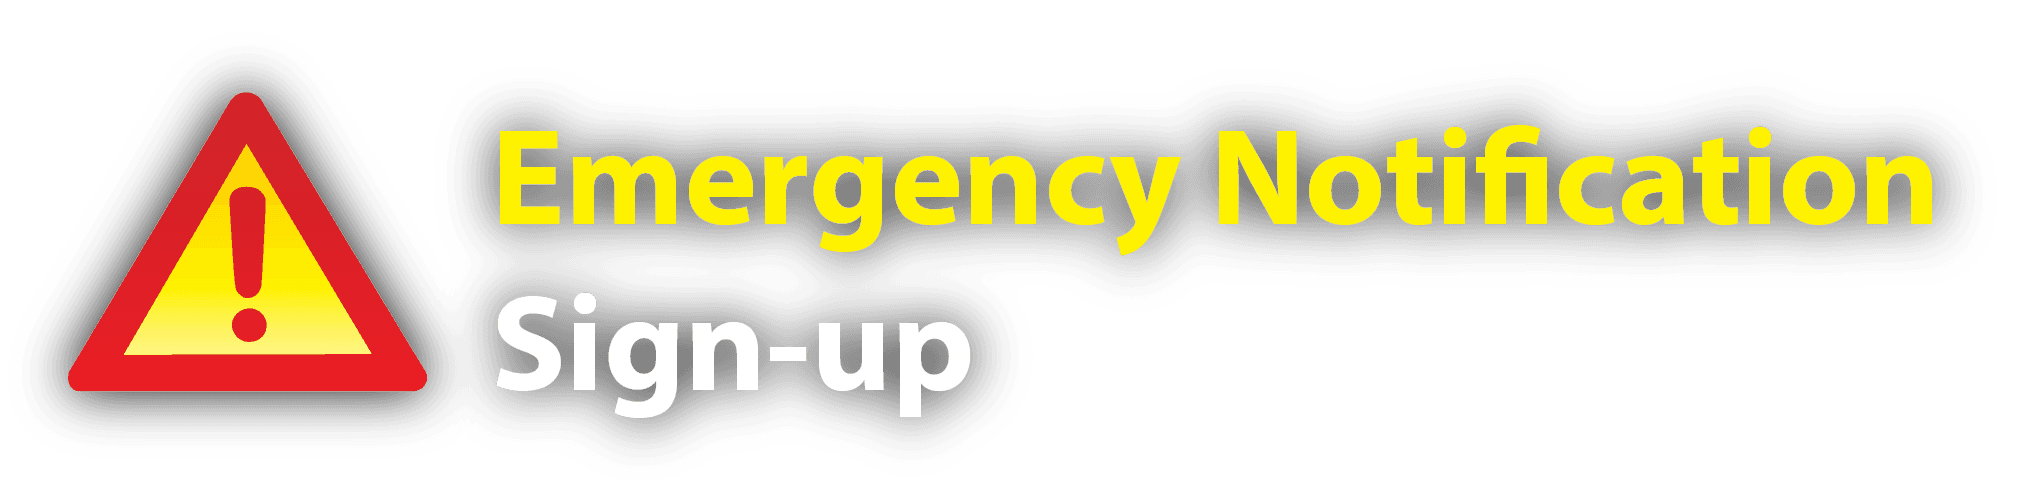 Nelson_emergency_sign-up banner March 2021